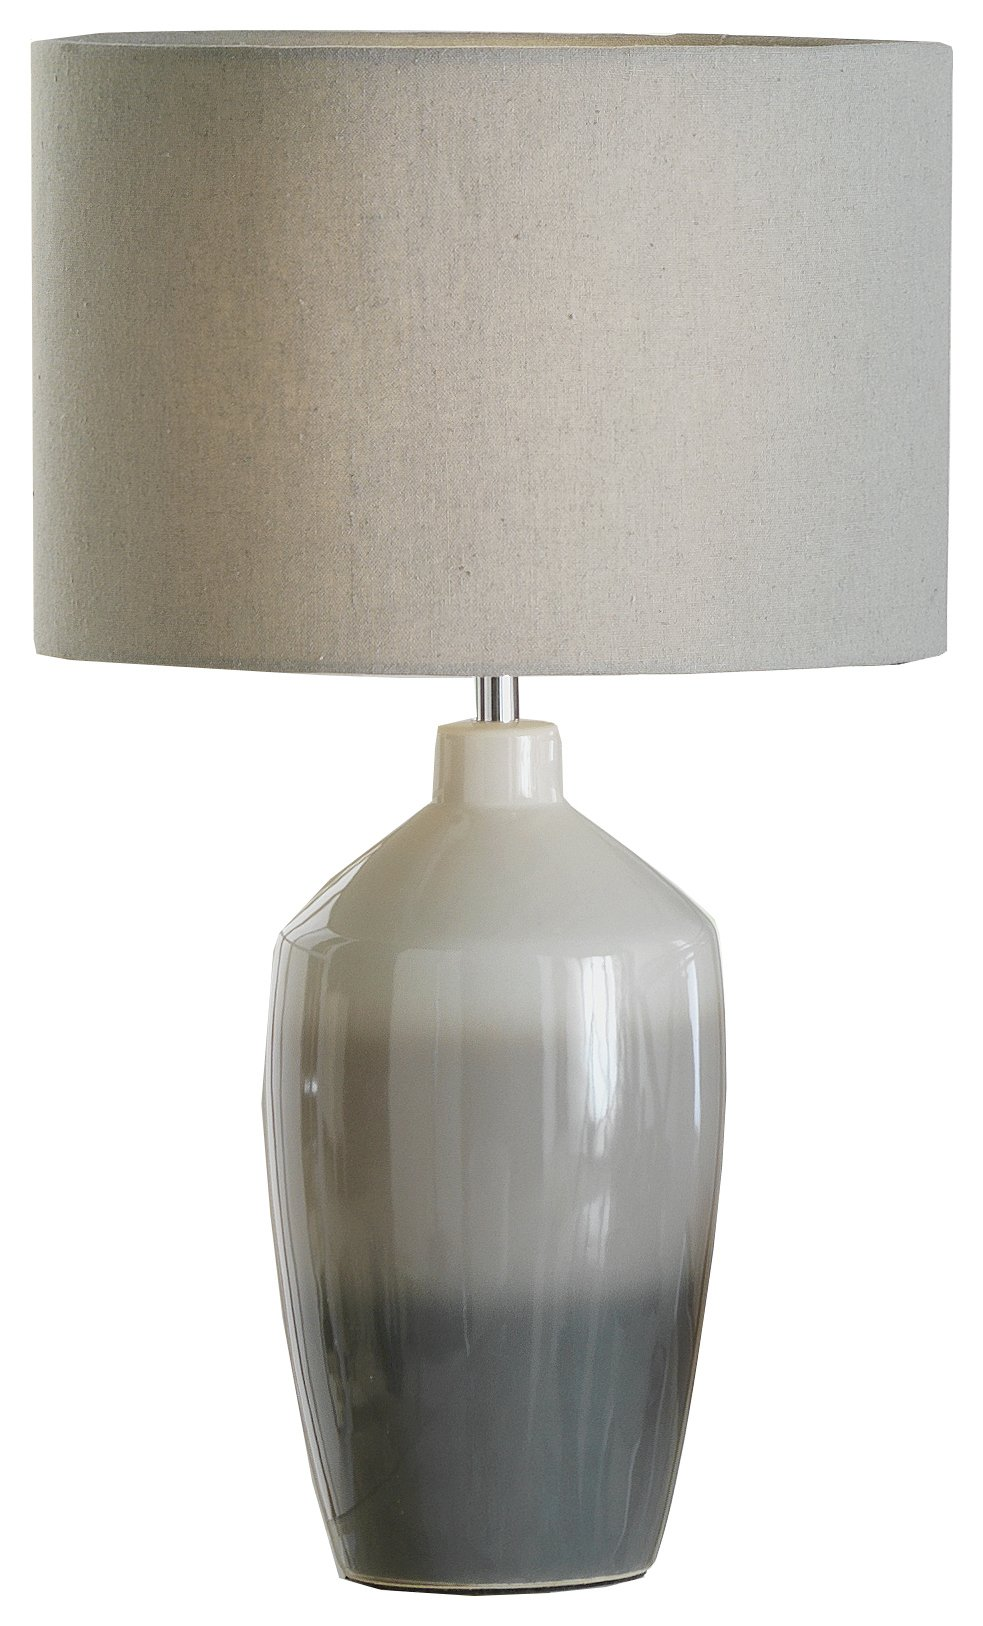 buy heart of house woodley ombre ceramic table lamp - grey | table